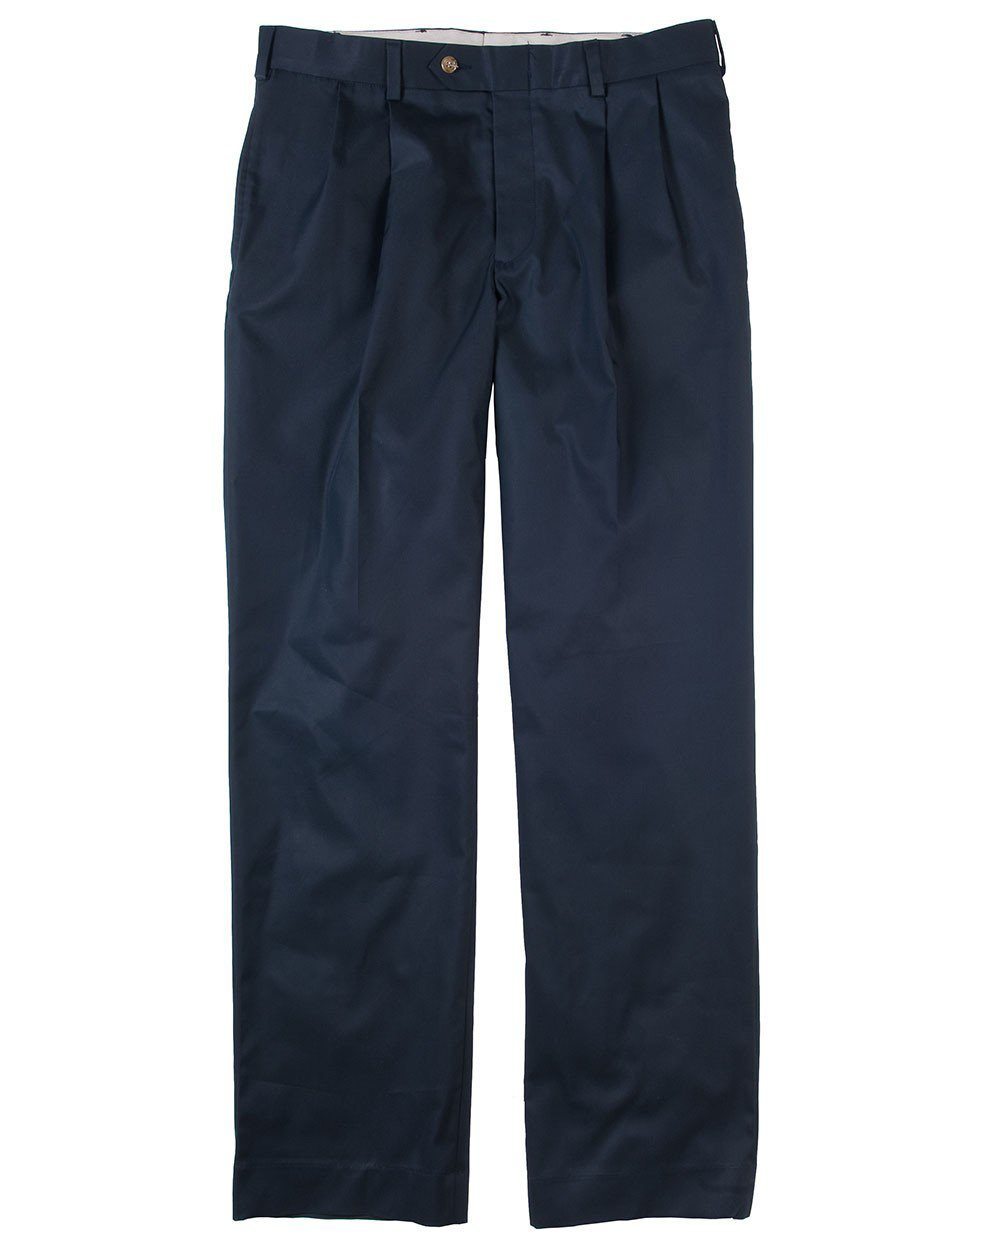 DM2P - Classic Fit Pleated - Travel Twill - Navy